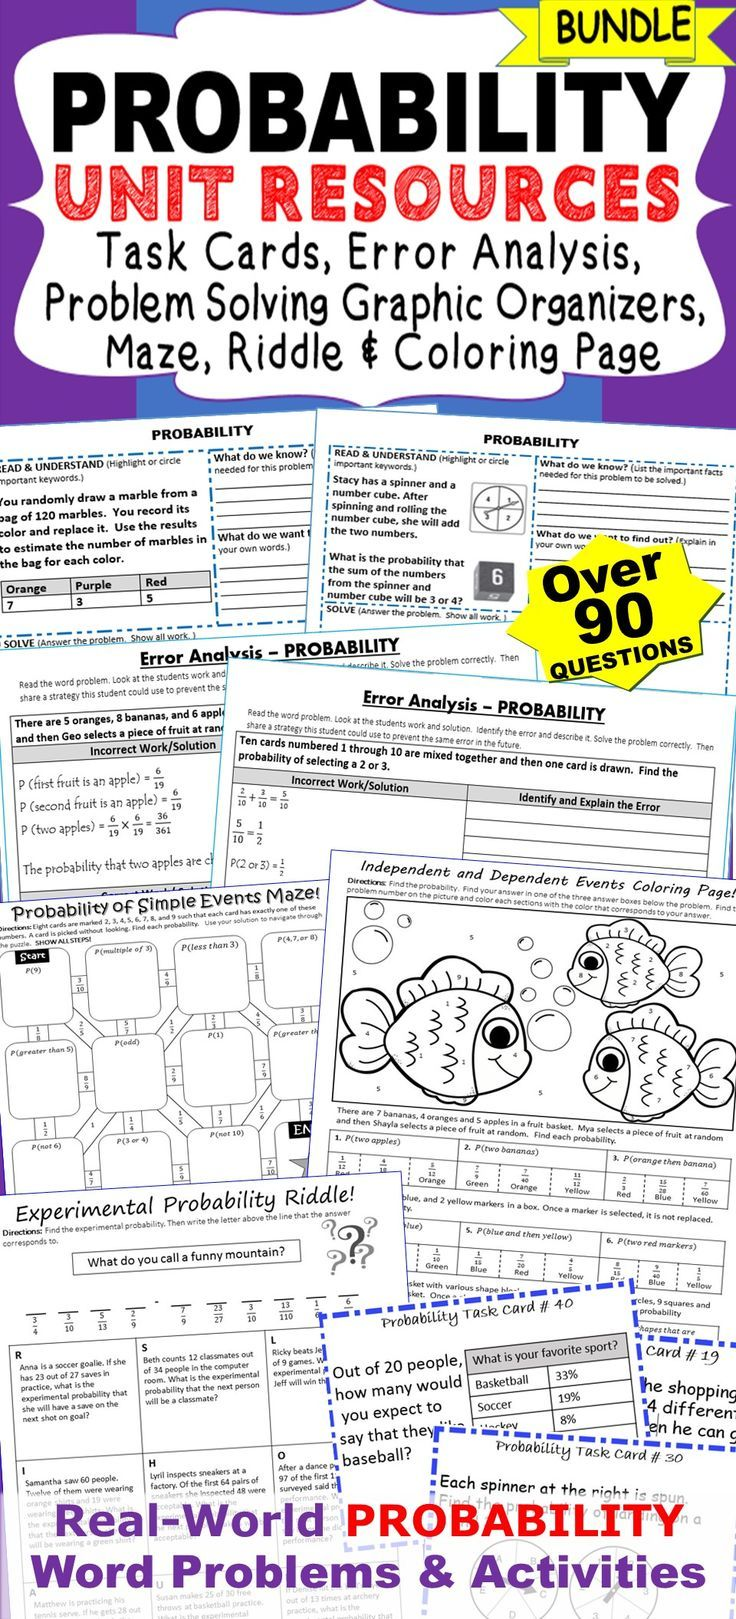 PROBABILITY Unit Resource BUNDLE  Includes 40 task cards, 10 error analysis activities 10 problem solving graphic organizers, 1 maze, 1 riddle and 1 coloring activity. Perfect for math assessments, math homework and math stations. Topics : ✔️ probability of simple events ✔️ theoretical and experimental probability ✔️ probability of compound events ✔️ simulations ✔️ Fundamental Counting Principal ✔️ pe